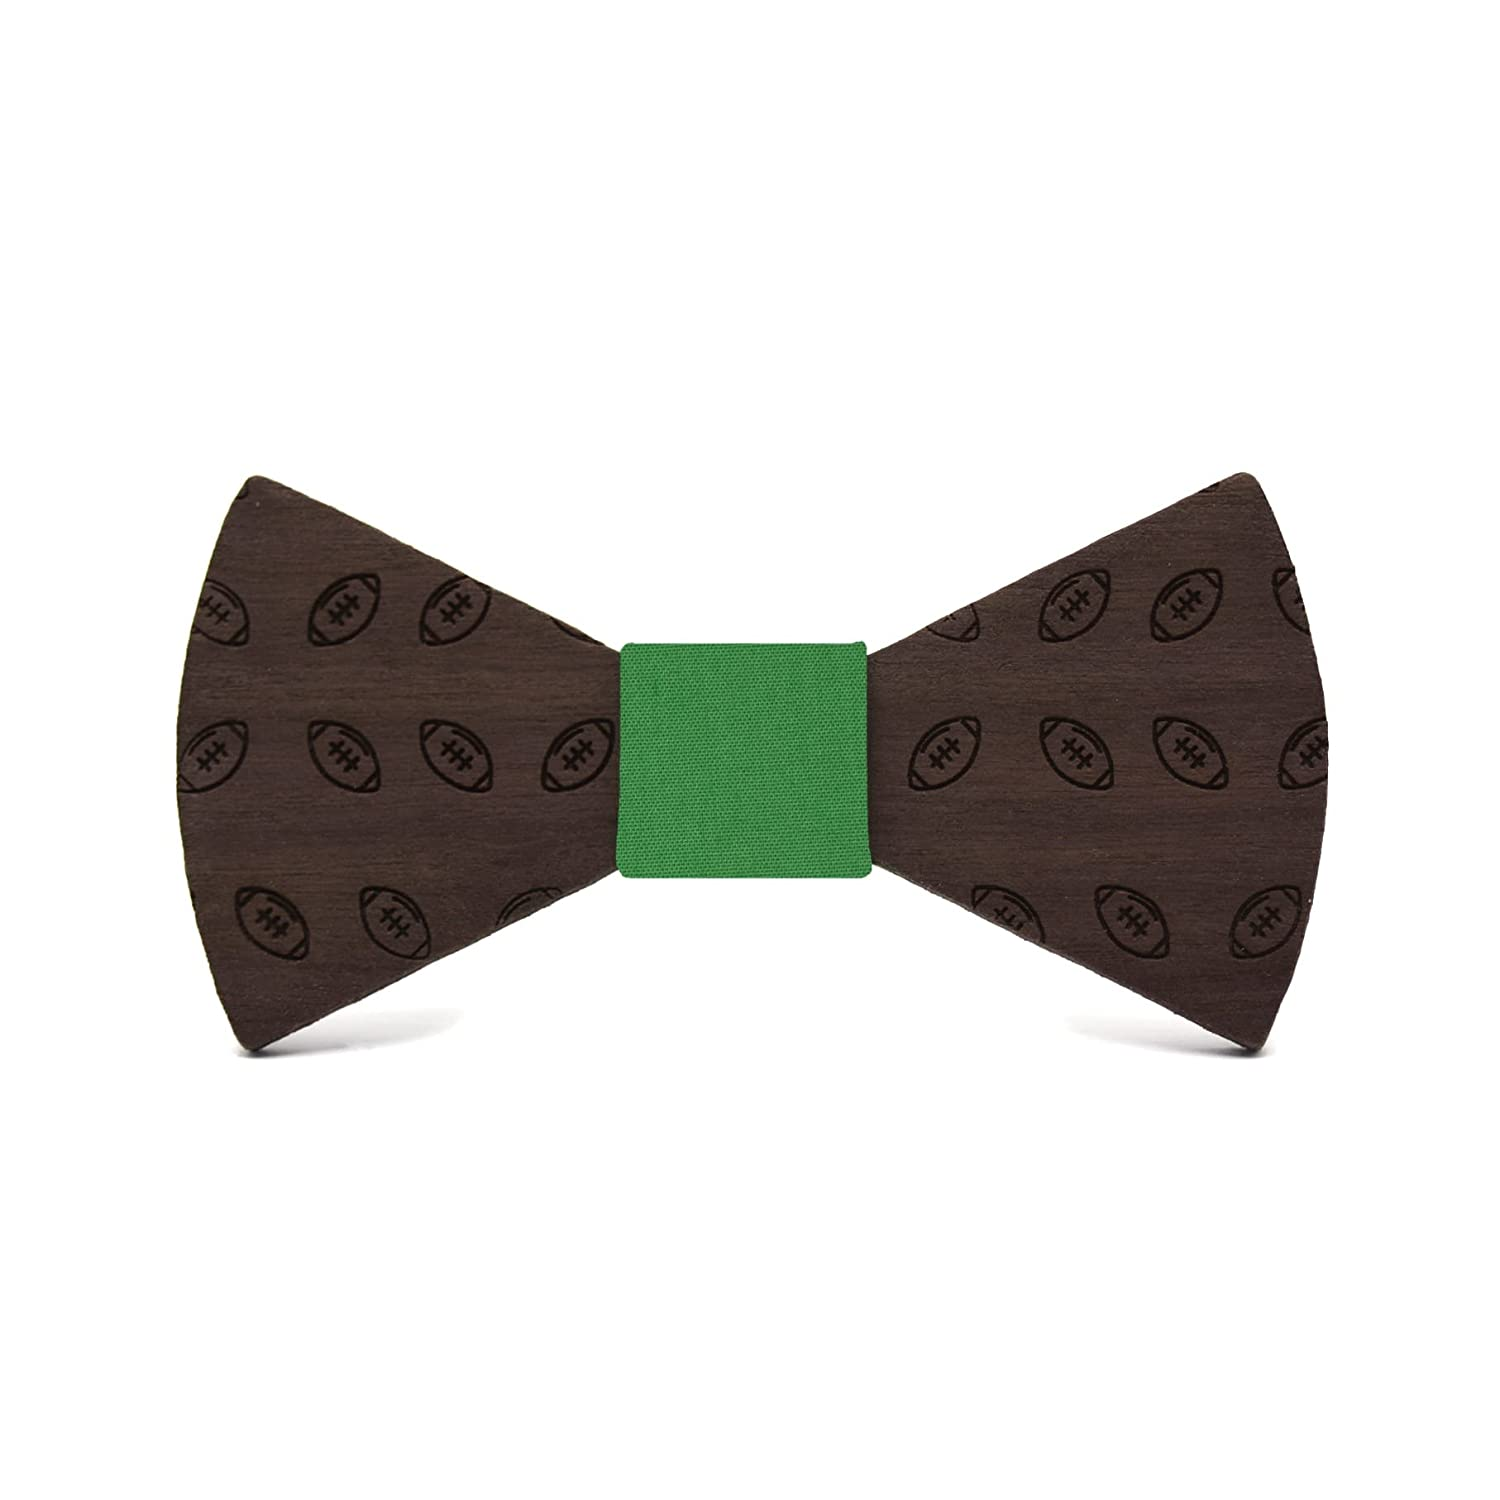 Wooden bow tie Football Fashion collection for men Sport design for an elegant and original handmade gift Wedding /& events